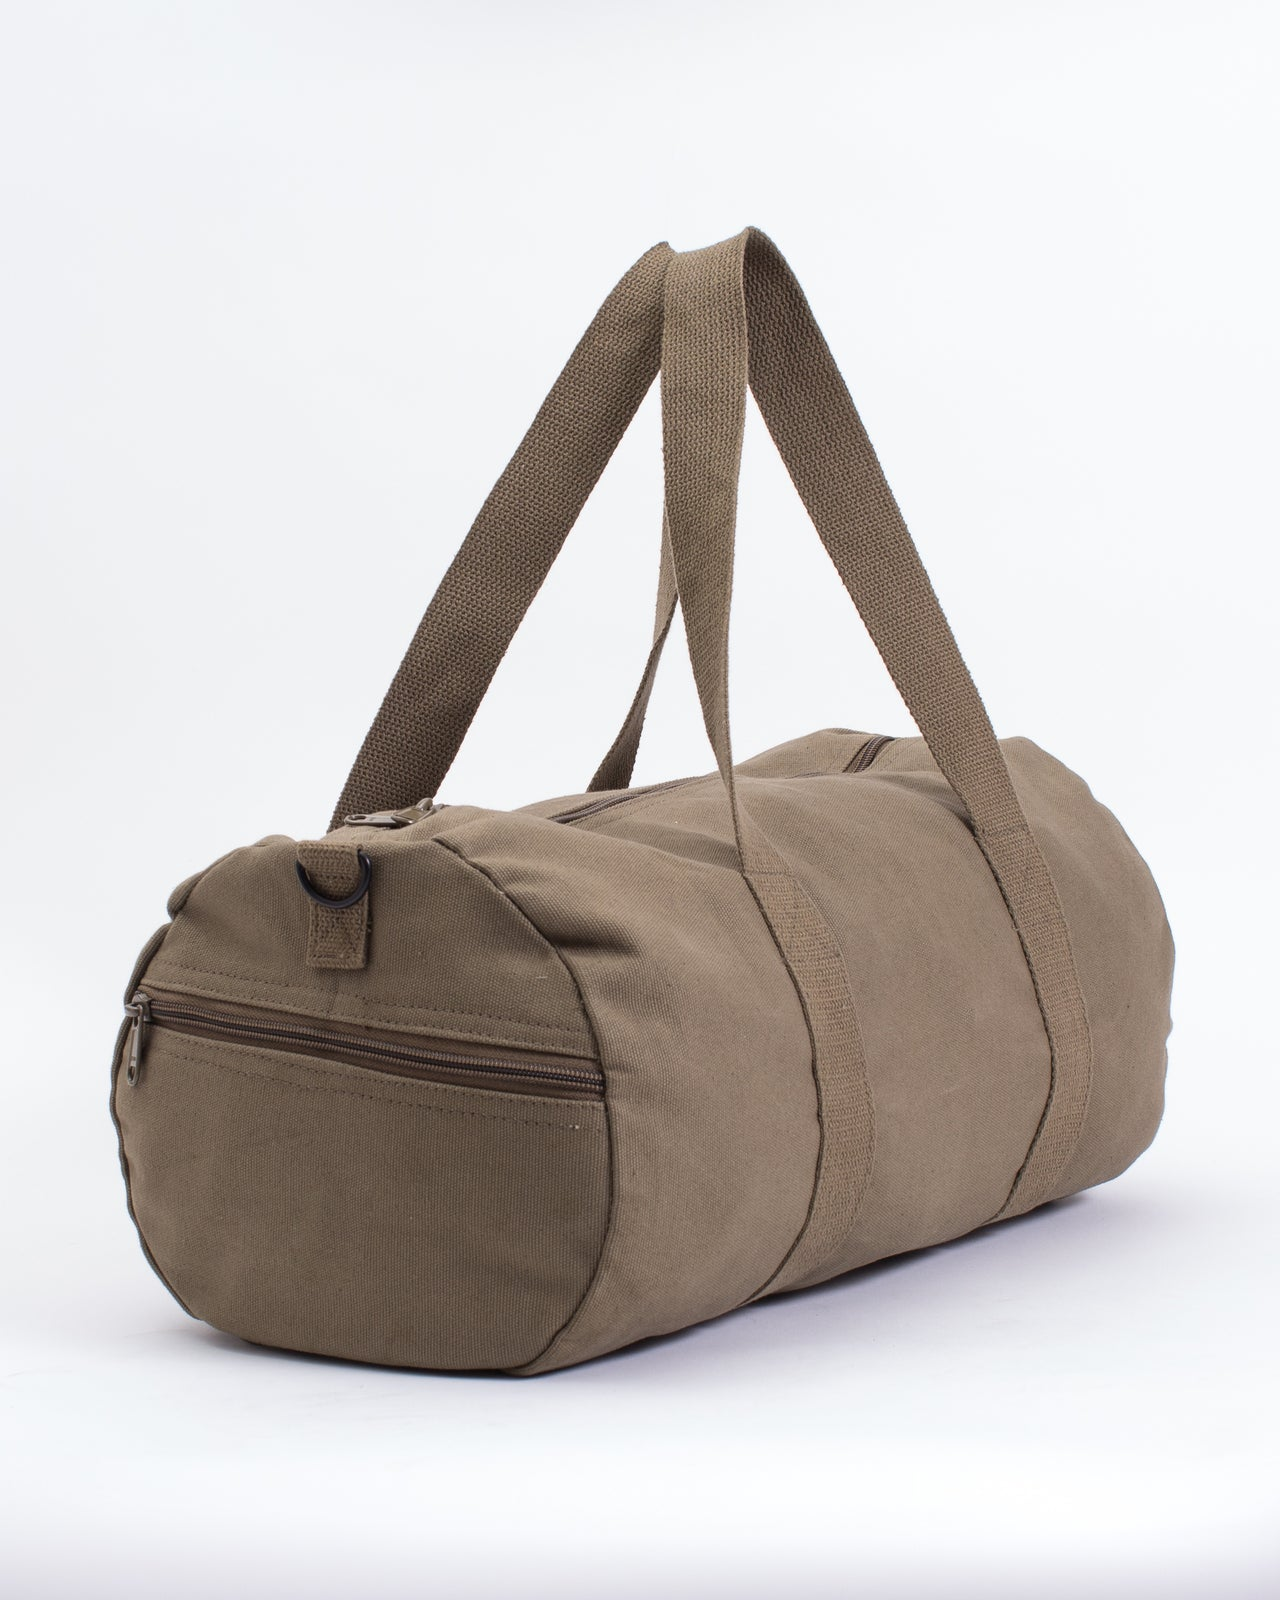 19 Inch Duffle Canvas Bag - Color: Olive Drab | Green